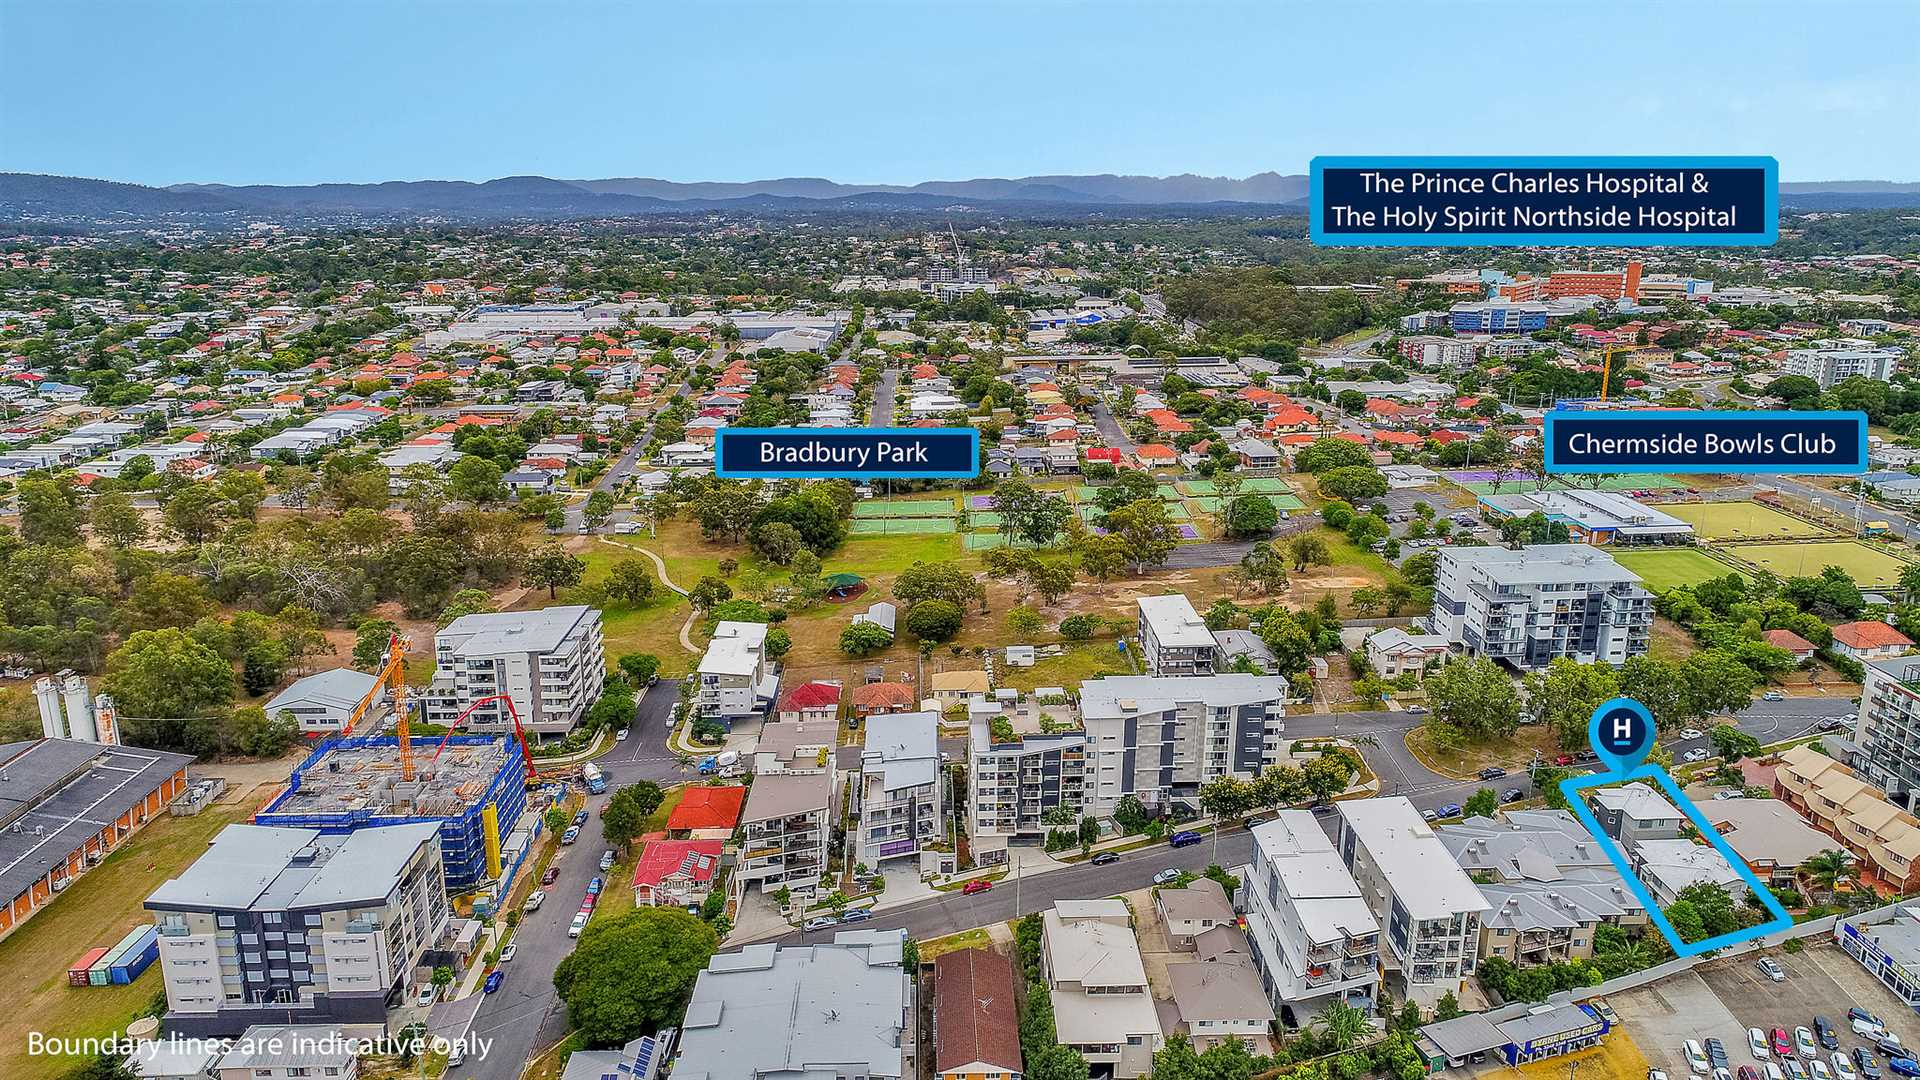 Views West to Chermside Two Hospitals